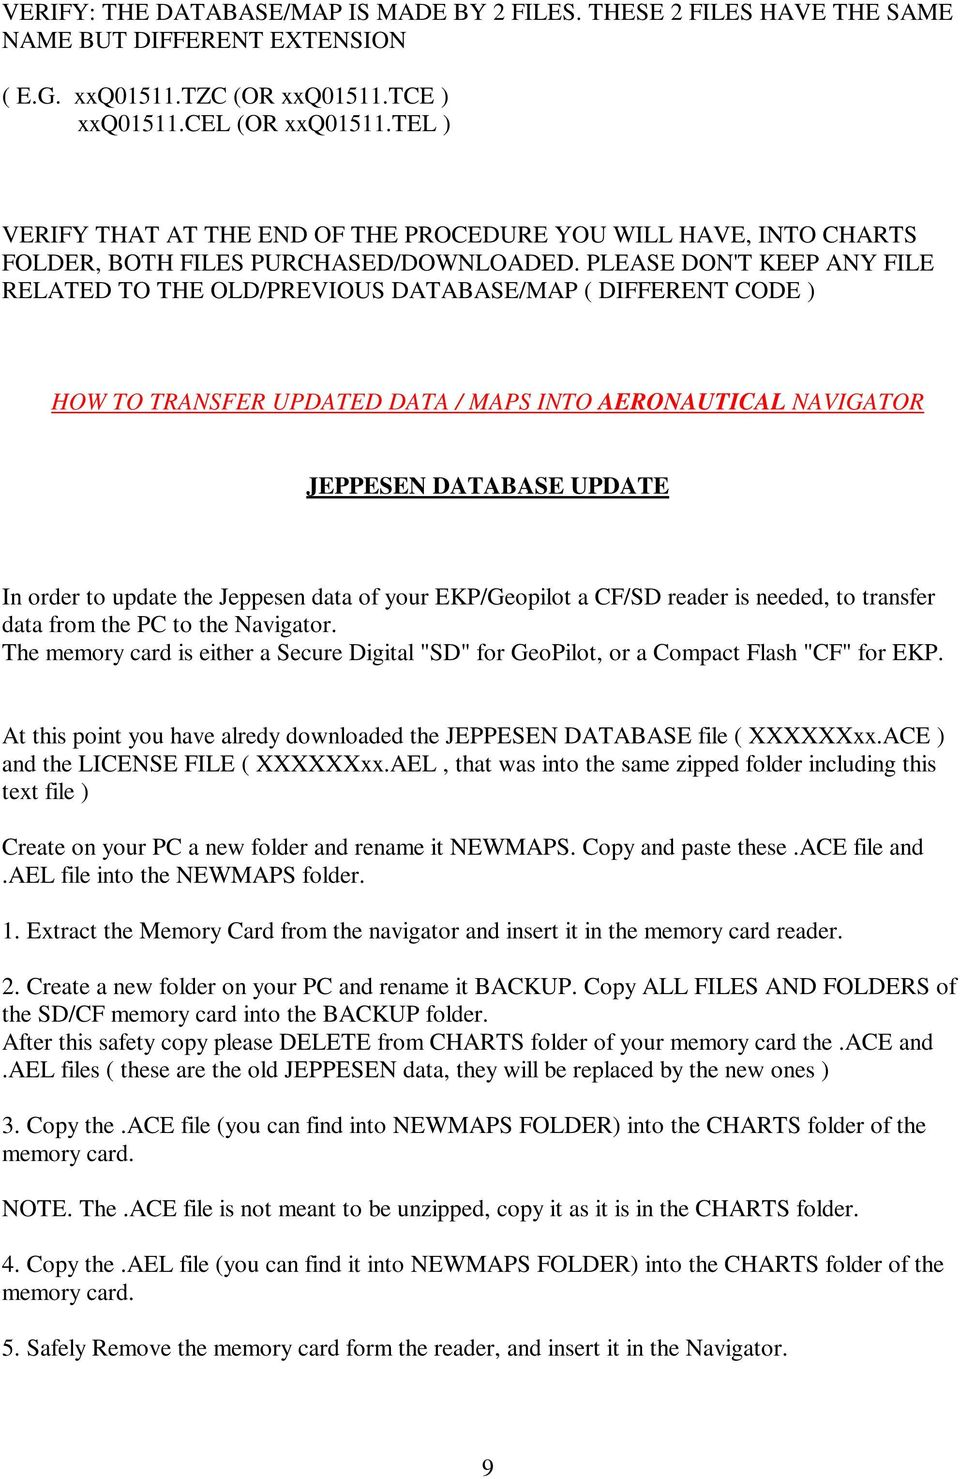 PLEASE DON'T KEEP ANY FILE RELATED TO THE OLD/PREVIOUS DATABASE/MAP ( DIFFERENT CODE ) HOW TO TRANSFER UPDATED DATA / MAPS INTO AERONAUTICAL NAVIGATOR JEPPESEN DATABASE UPDATE In order to update the